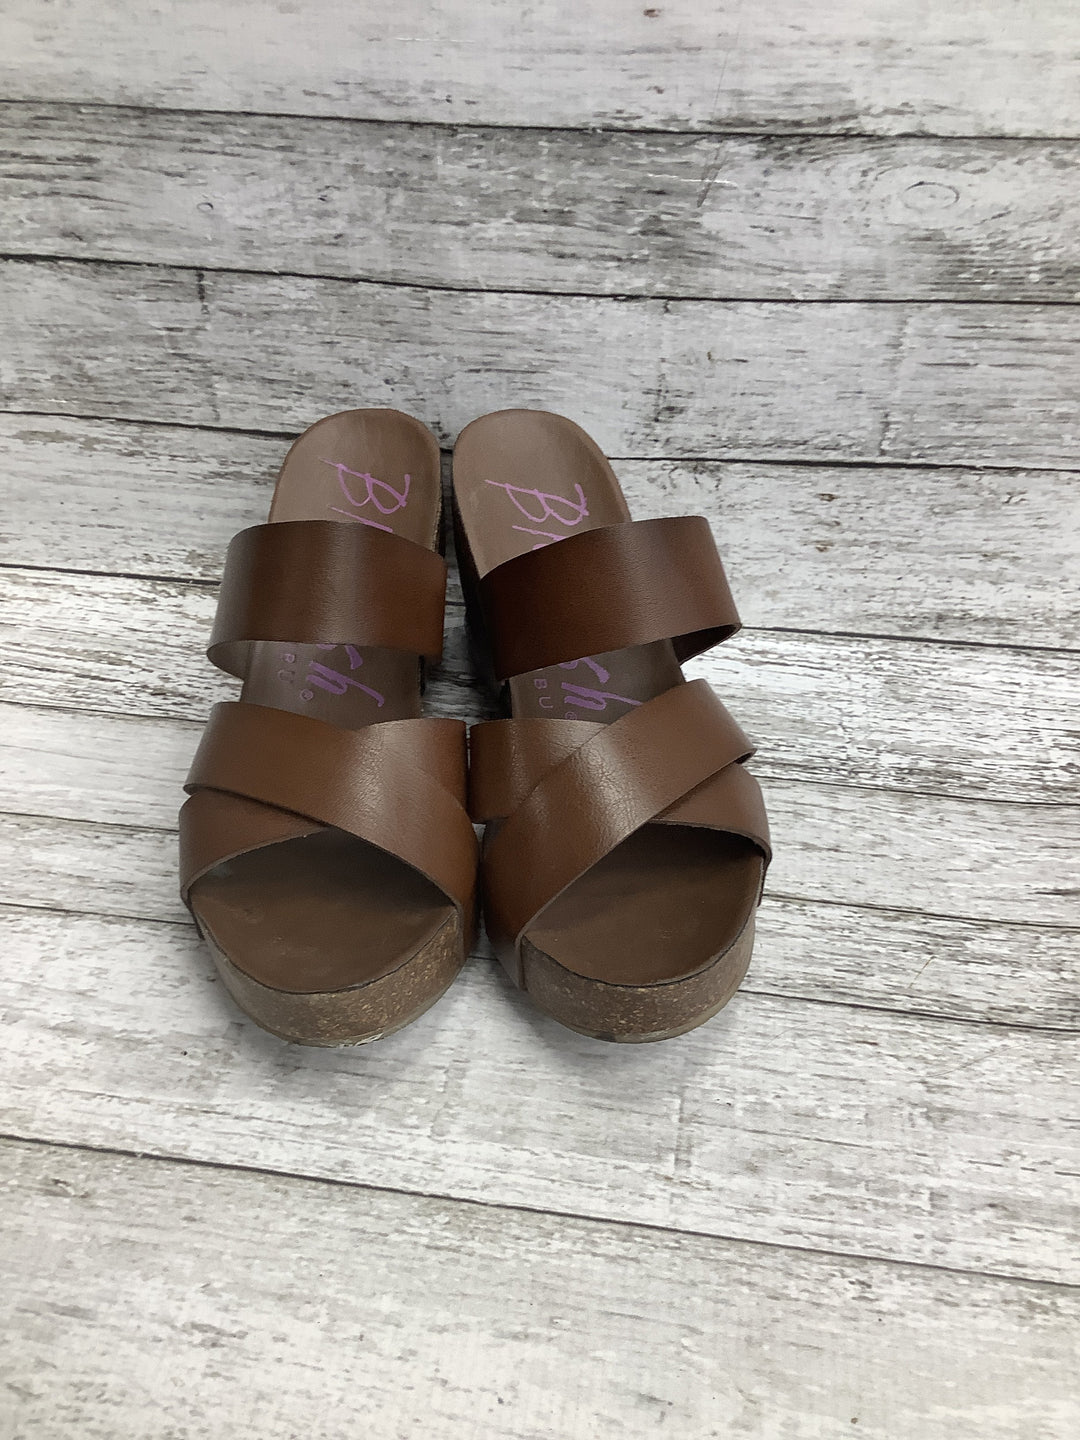 Primary Photo - brand: blowfish , style: sandals high , color: brown , size: 9 , sku: 105-5184-1623